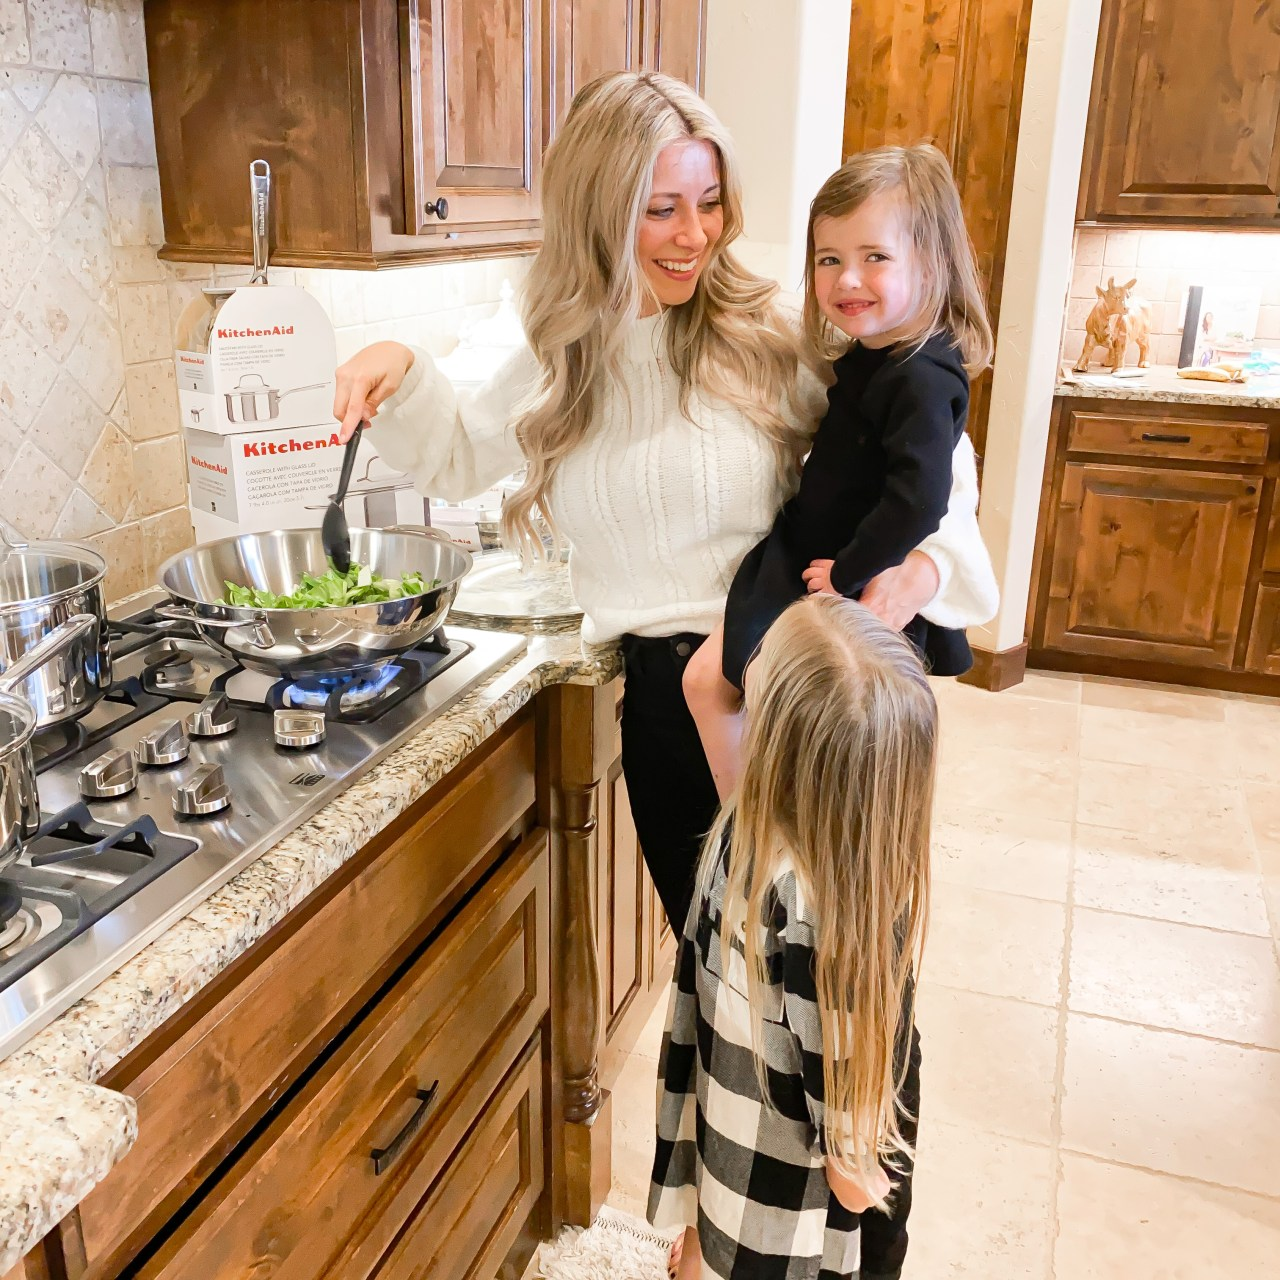 How to score Free KitchenAid Cookware with Market Street!